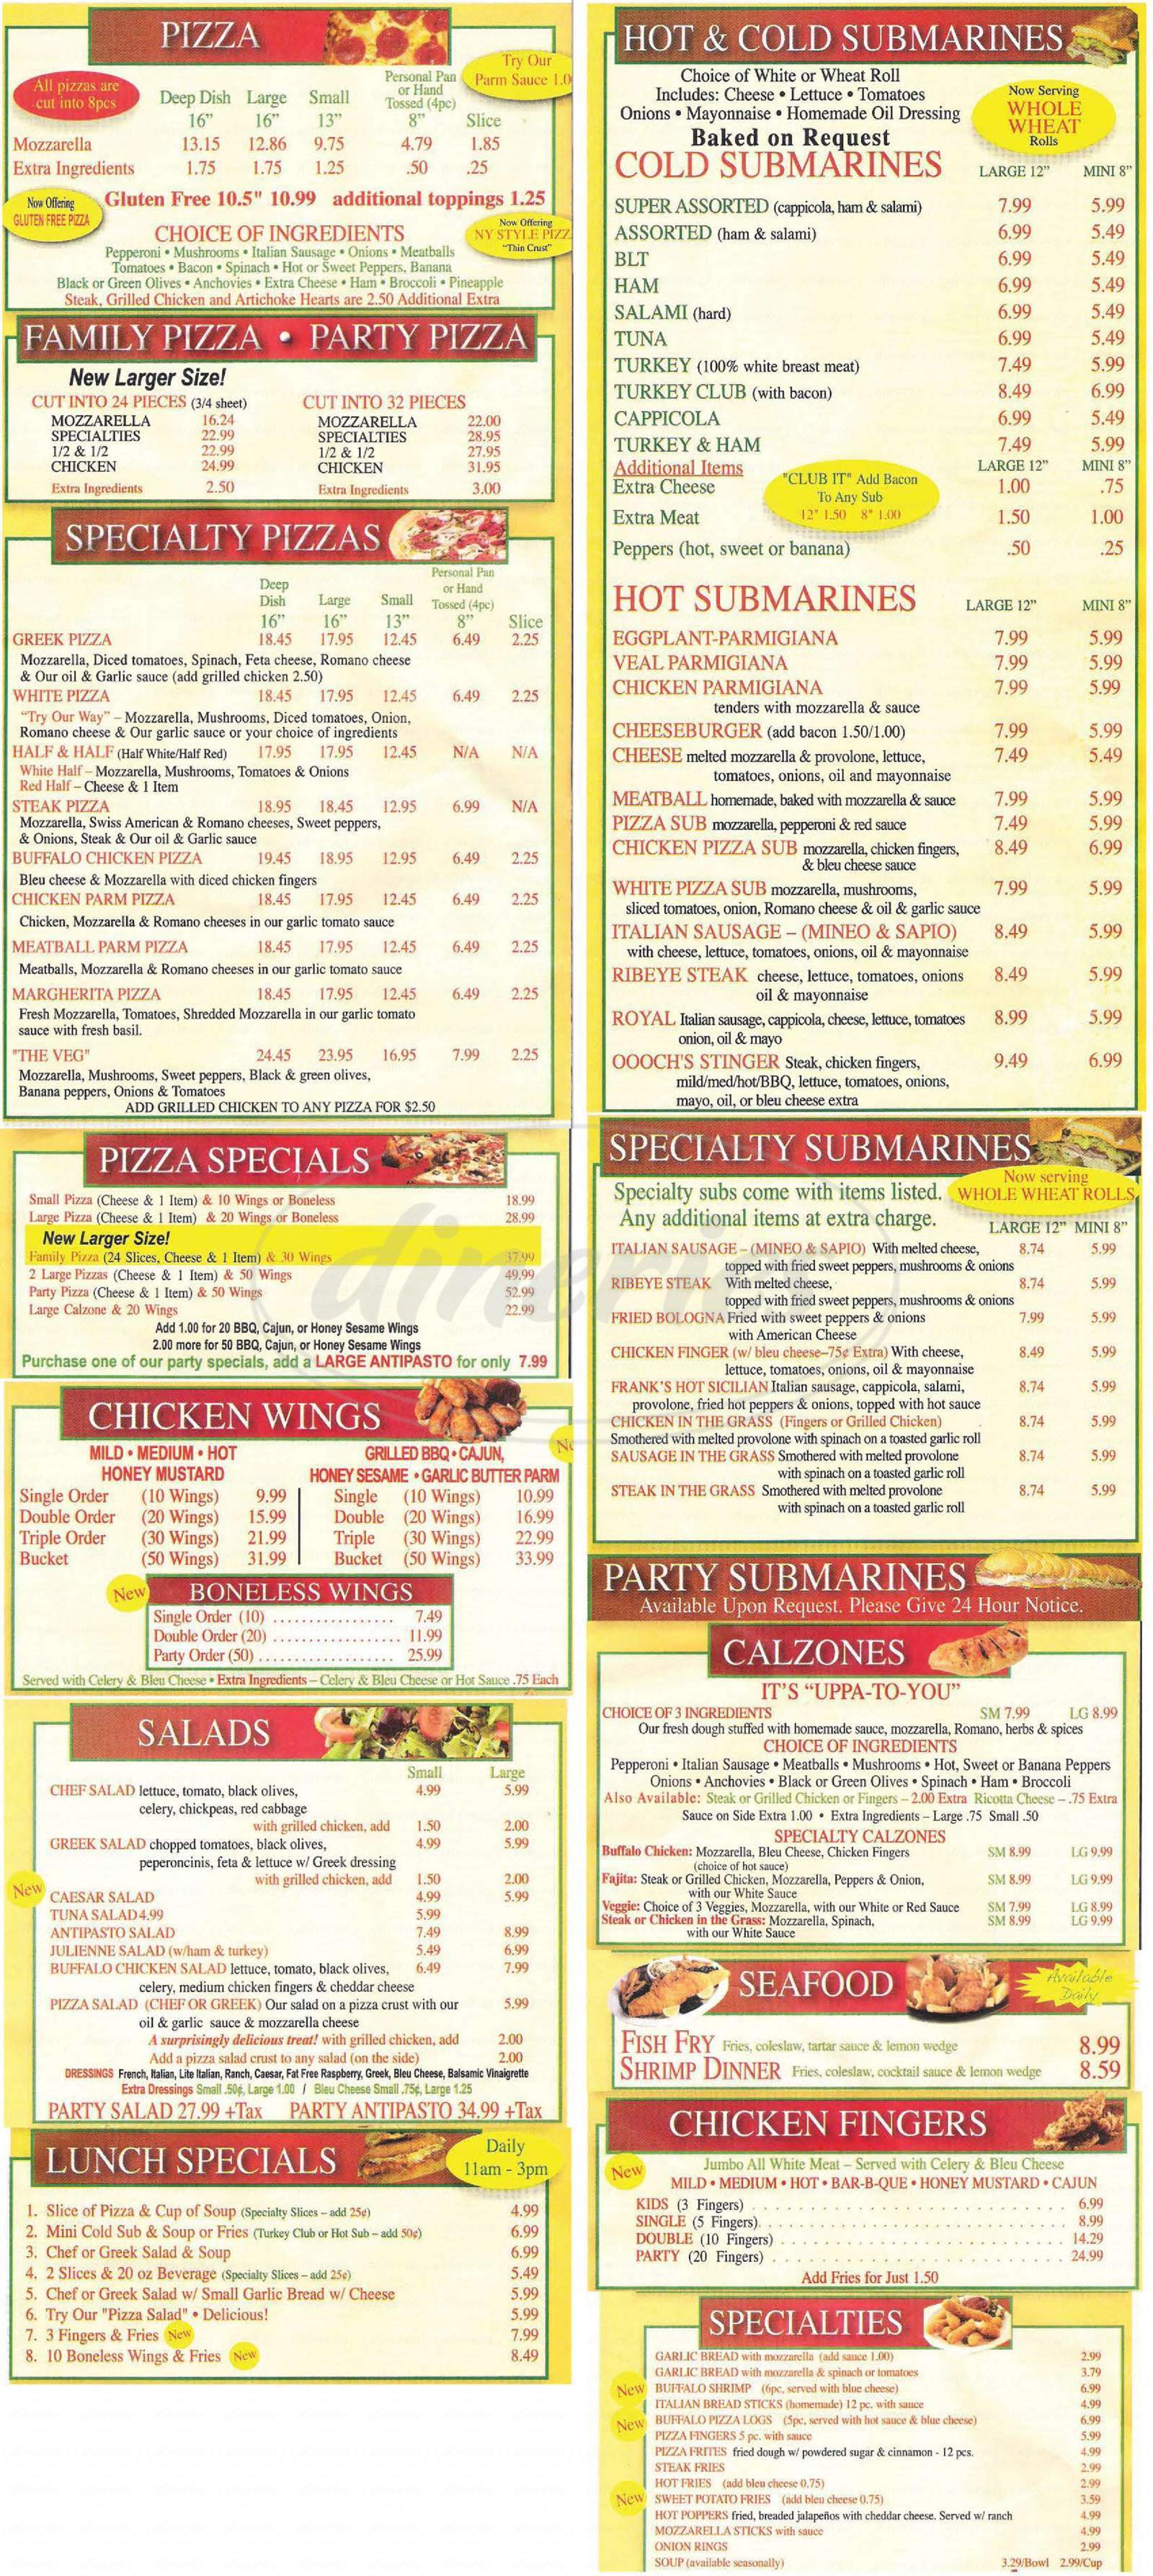 menu for La Portas Pizzeria